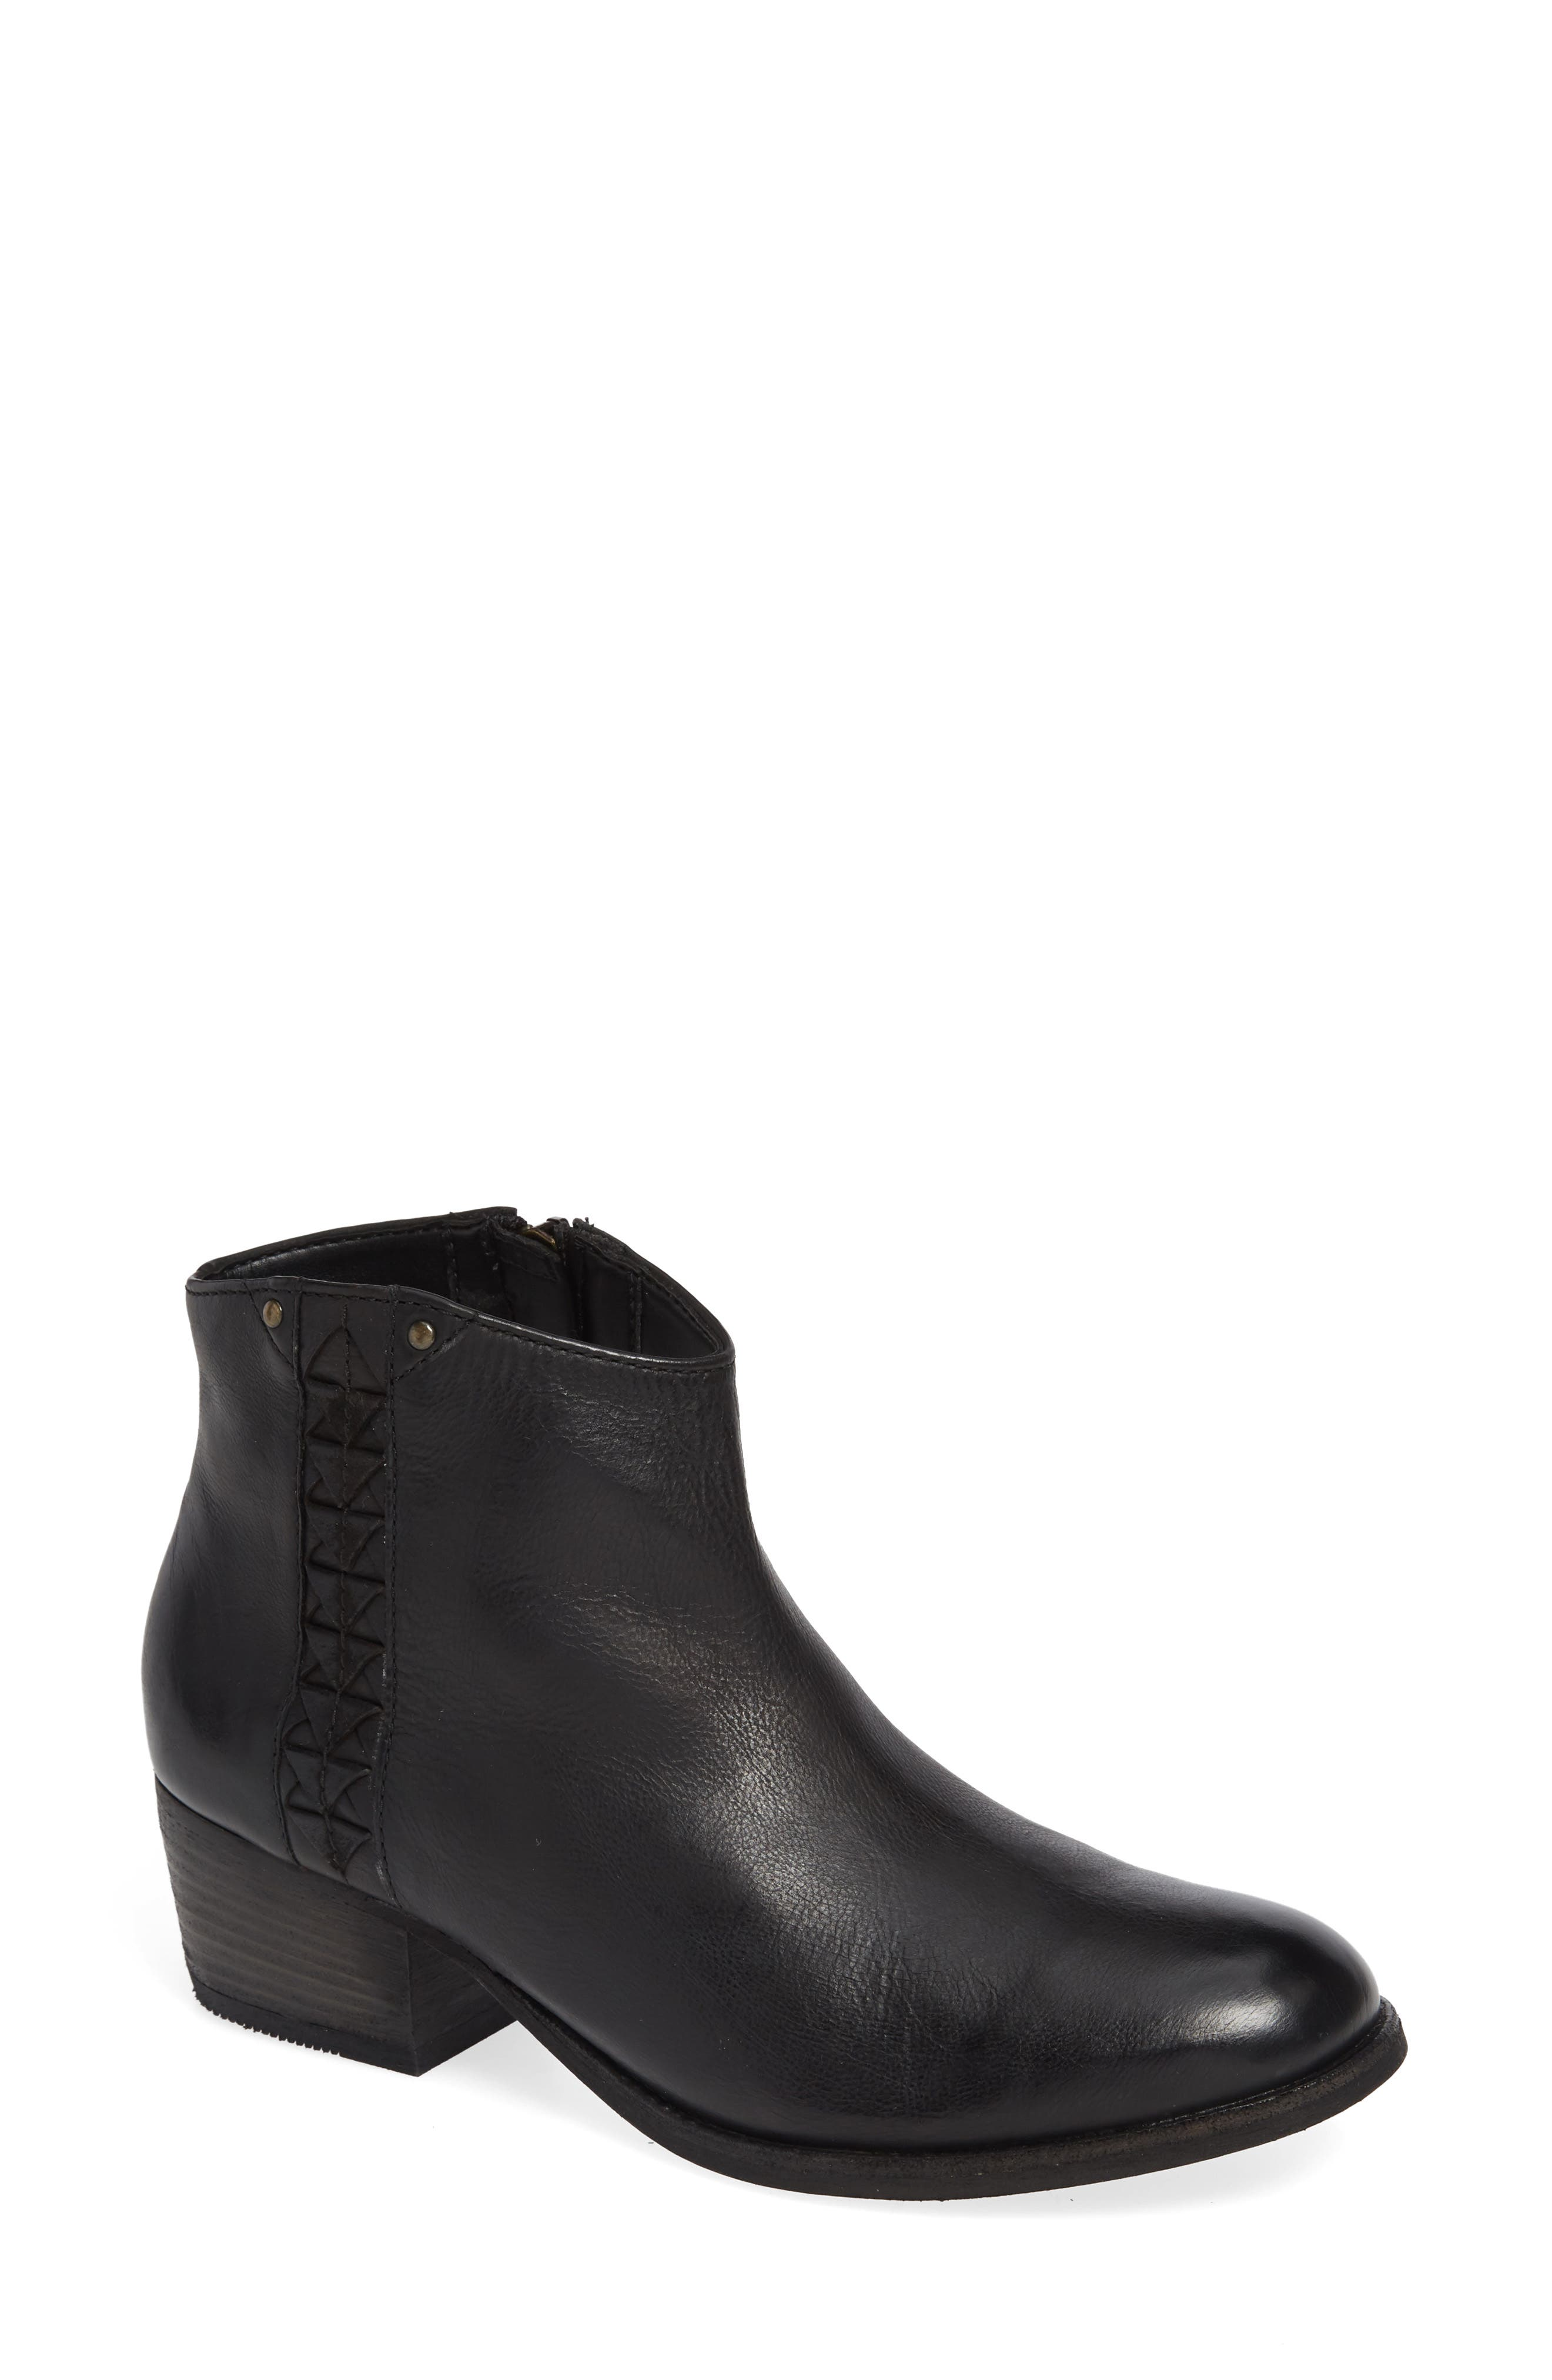 CLARKS<SUP>®</SUP>, Maypearl Fawn Bootie, Main thumbnail 1, color, BLACK LEATHER